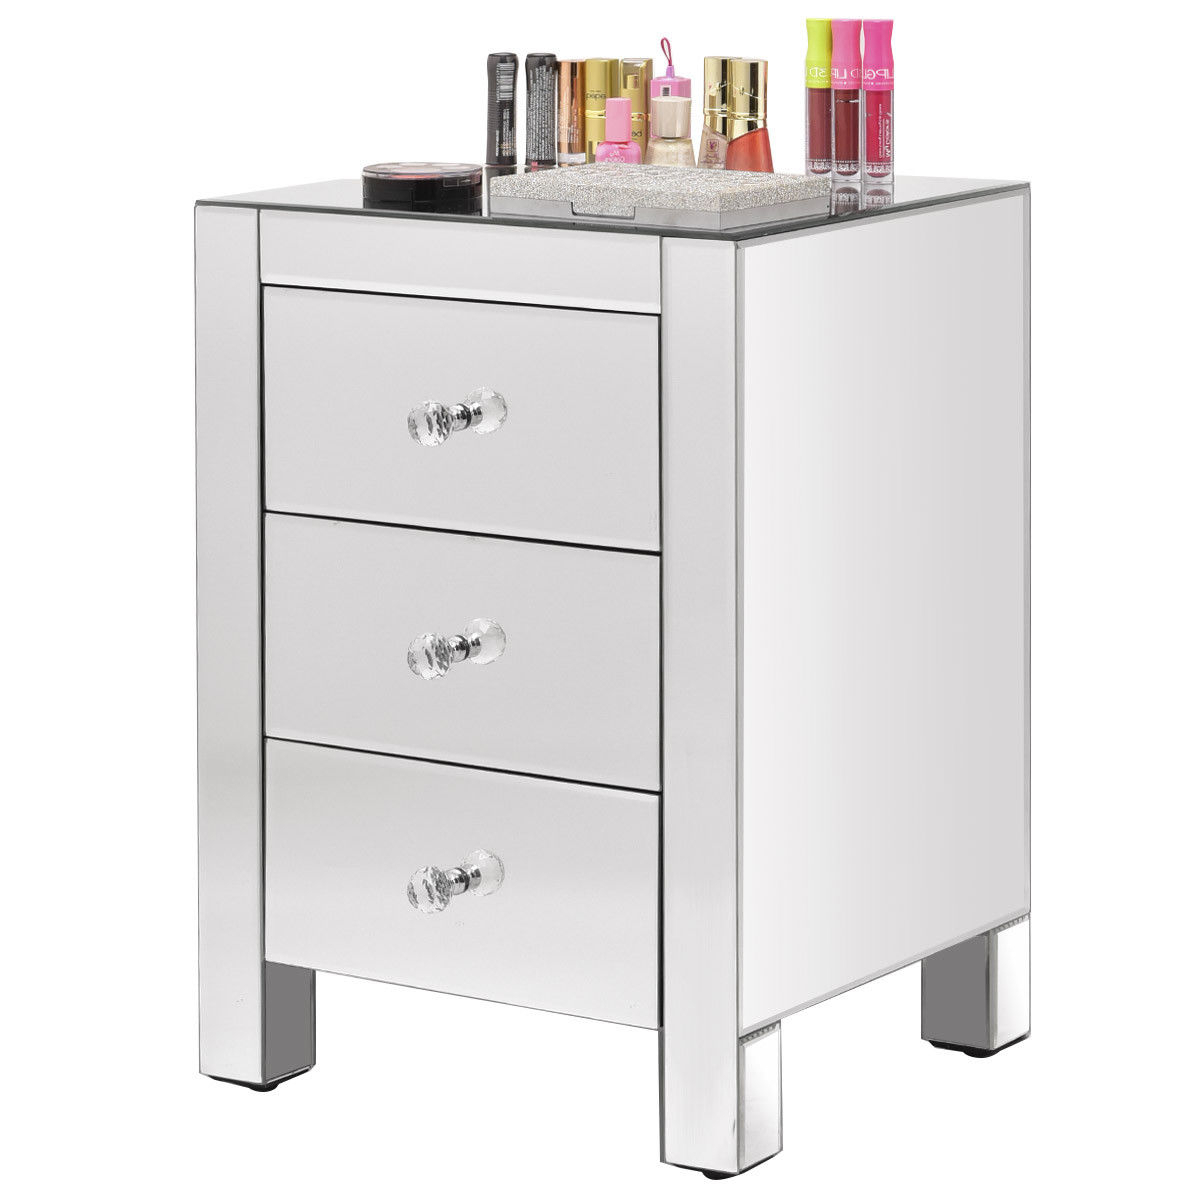 Costway: Costway Mirrored Nightstand 3 Drawer Modern Mirror End Intended For Most Up To Date Charcoal Finish 4 Door Jumbo Sideboards (View 6 of 20)